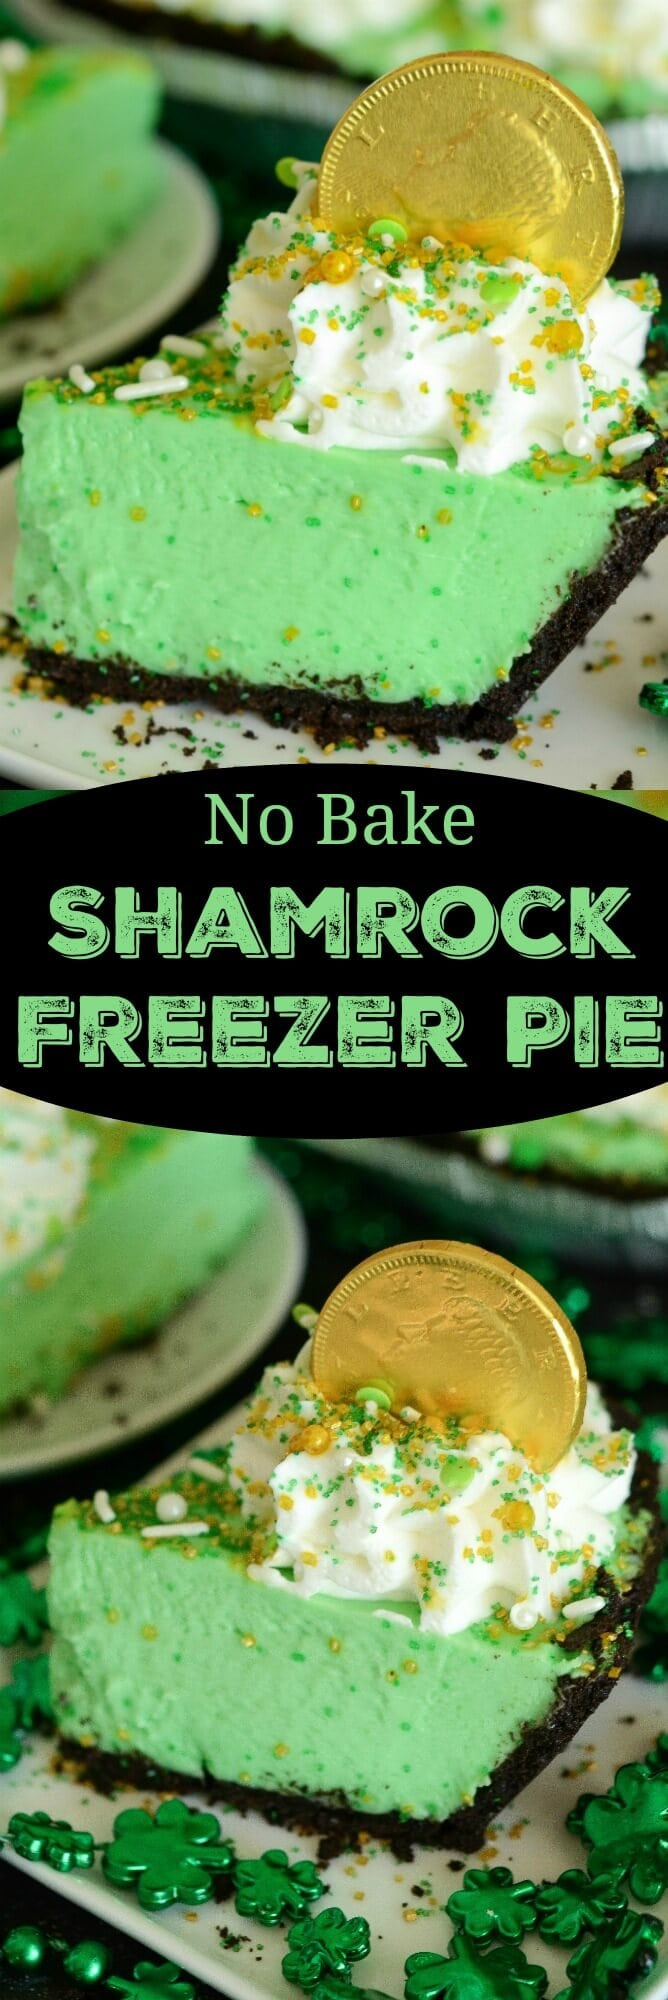 No Bake Shamrock Freezer Pie! Just a few ingredients to make this delicious mint pie for St. Patricks Day!